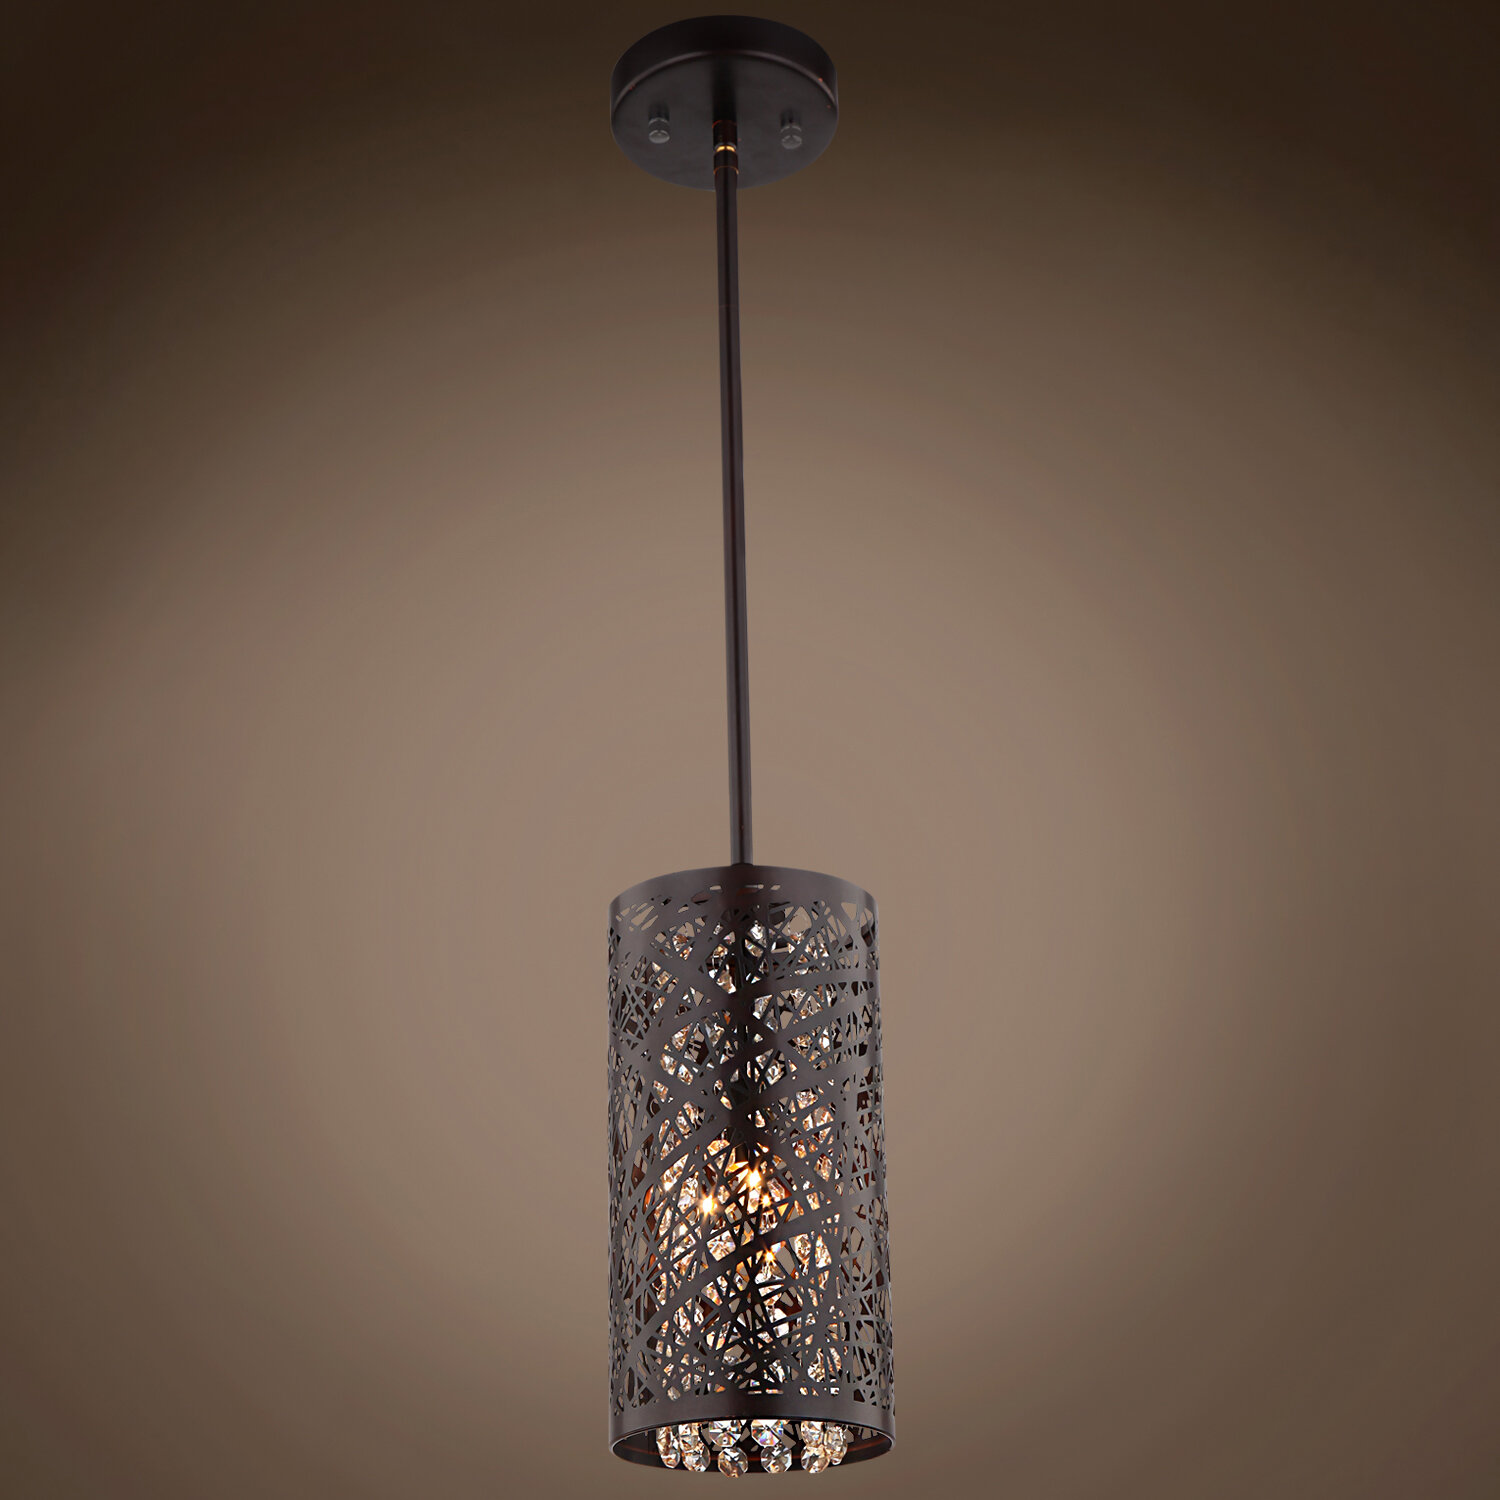 Mercer41 Hodder 1 Light Single Cylinder Pendant With Crystal Accents Wayfair